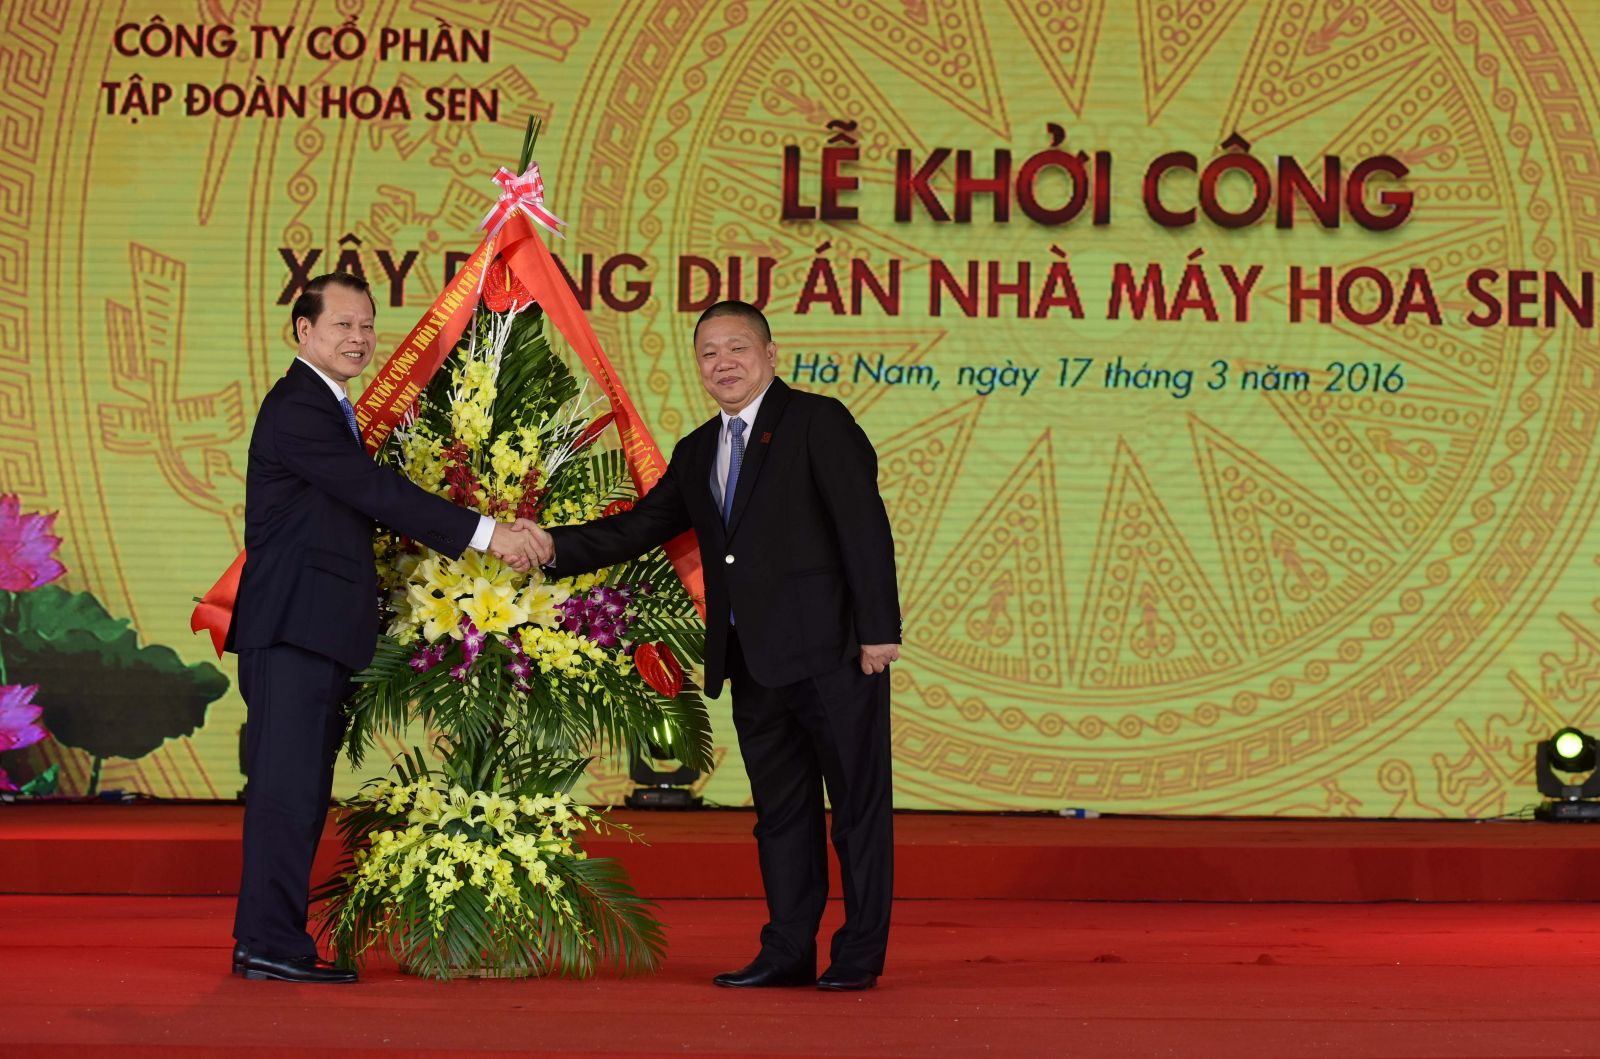 Deputy Prime Minister Vu Van Ninh and Mr. Le Phuoc Vu, CEO of Hoa Sen Group